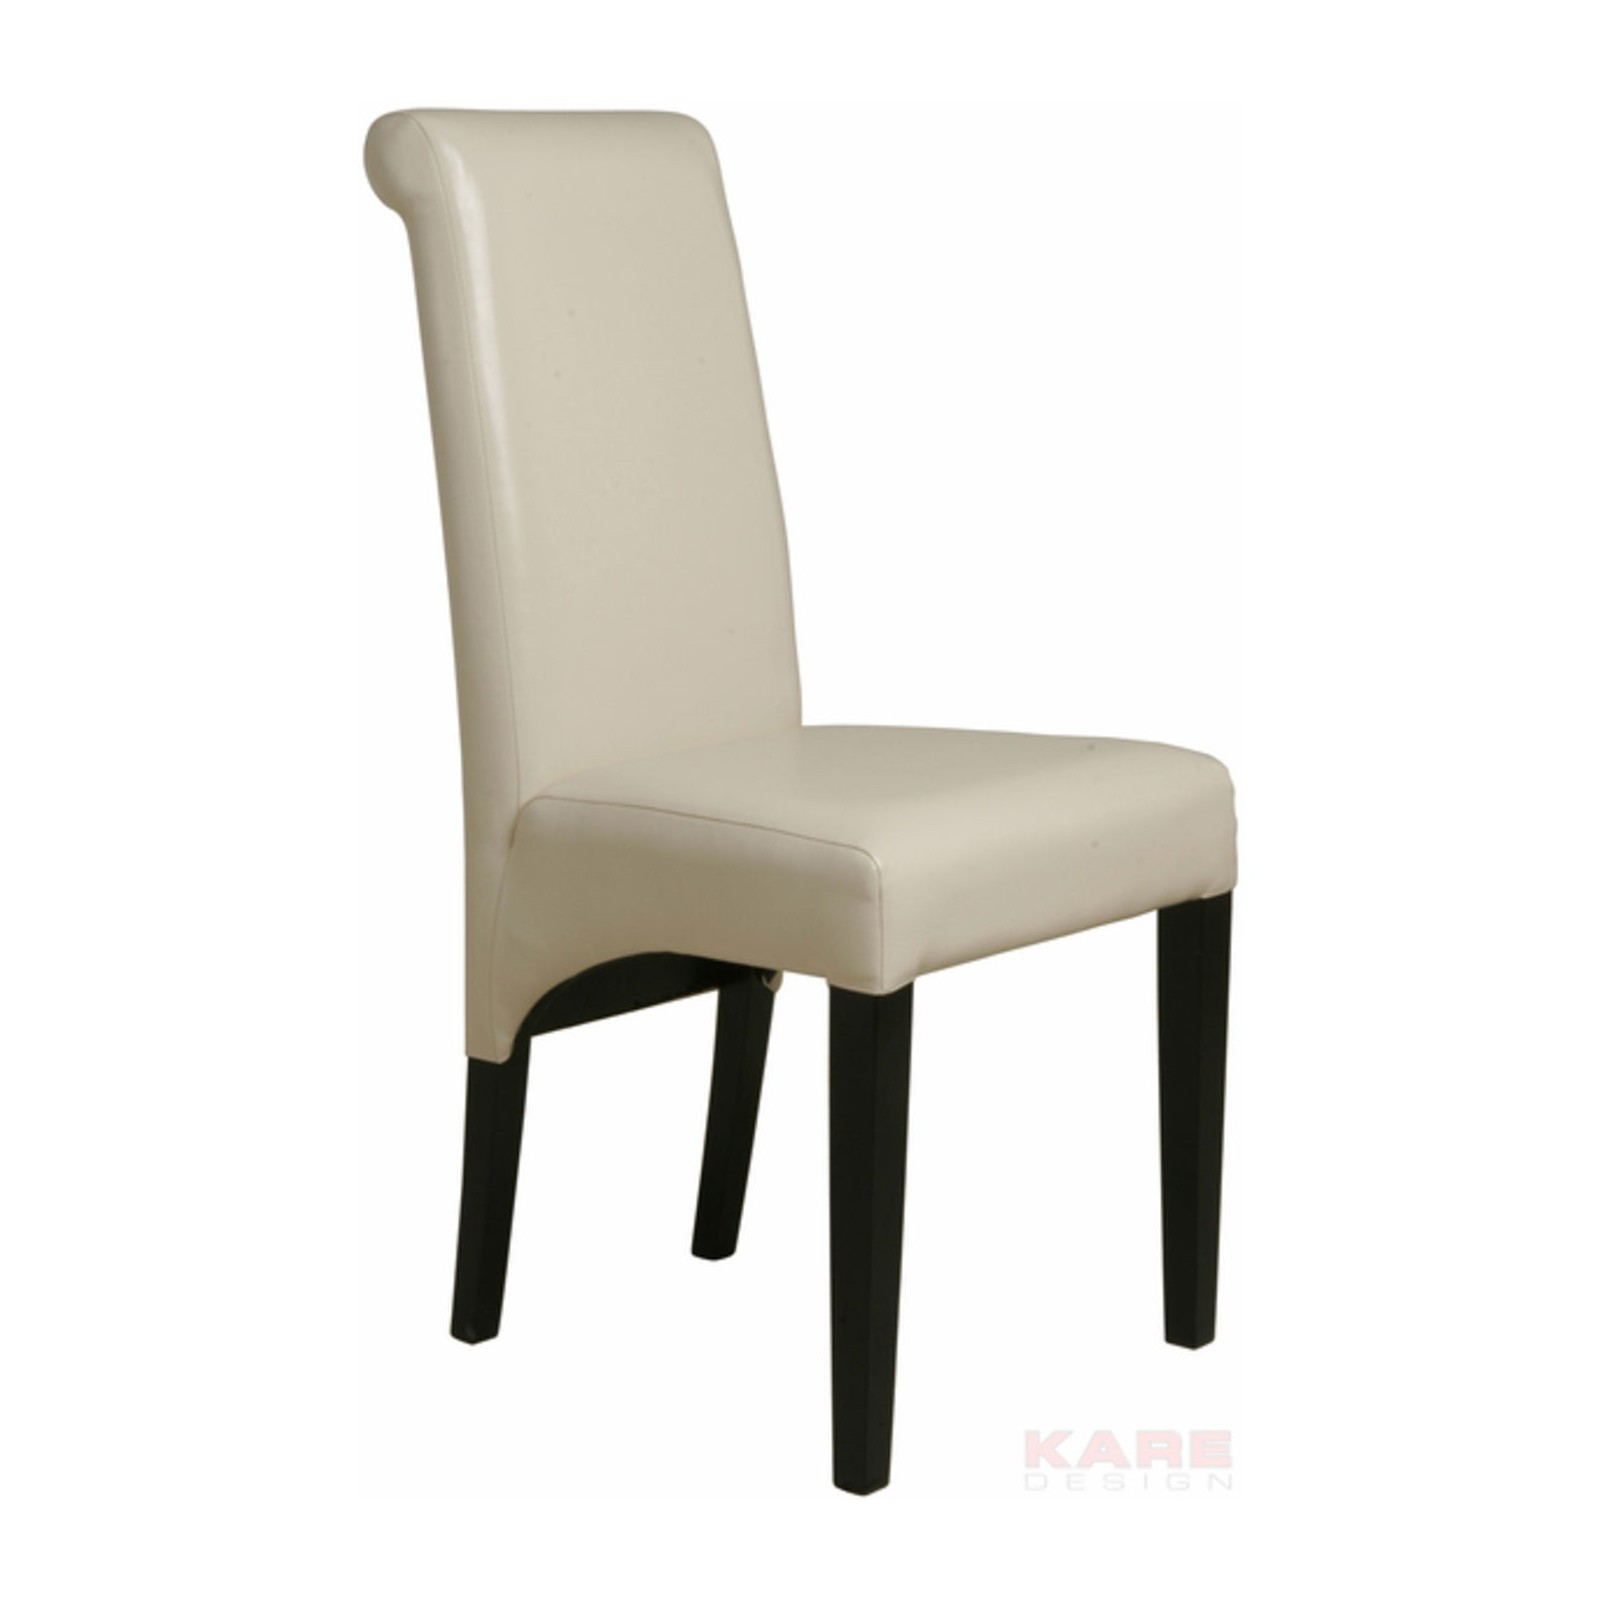 Chaise isis cr me kare design for Chaise coffre